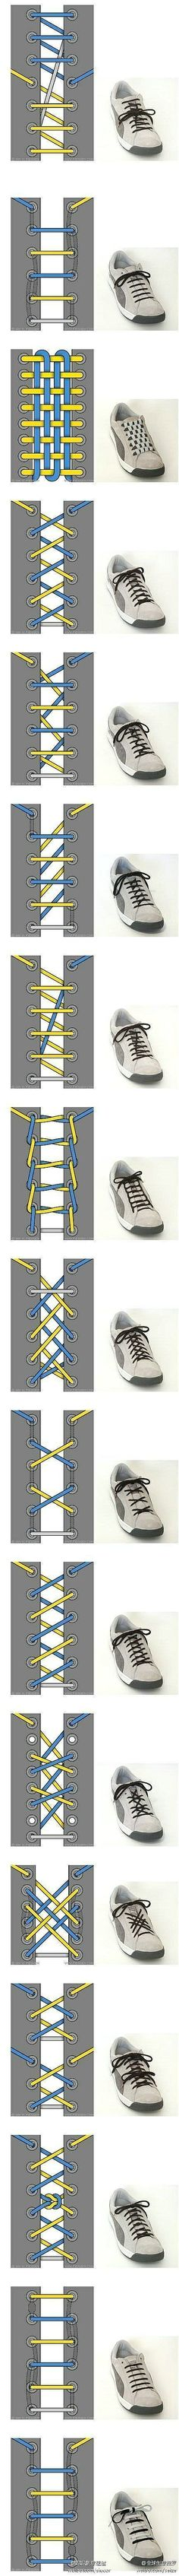 Cool Ways To Tie Your Shoe Laces ~ shoe lace patterns ~ Will have to remember this when the kids finally get shoes with laces. Your Shoes, Good To Know, Life Hacks, Creations, Mens Fashion, Boyish Fashion, Fashion 2020, Fashion Dolls, Style Fashion